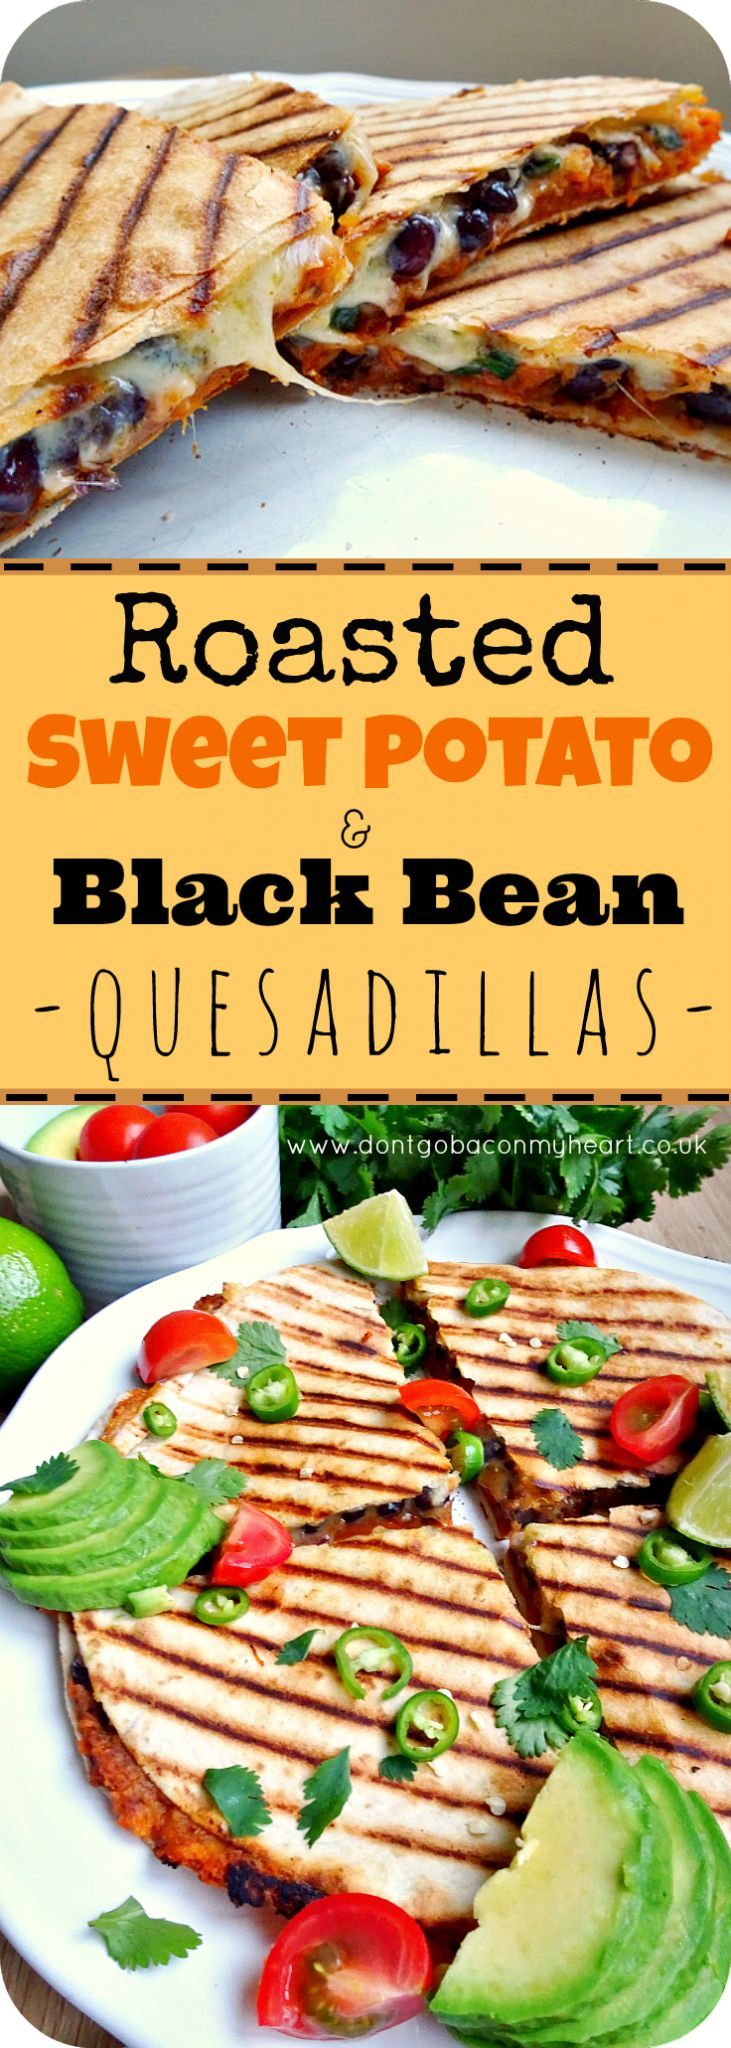 The best vegetarian Quesadillas you'll ever make. So easy, super quick and most importantly really delicious and filling. Easy to adapt to vegan.